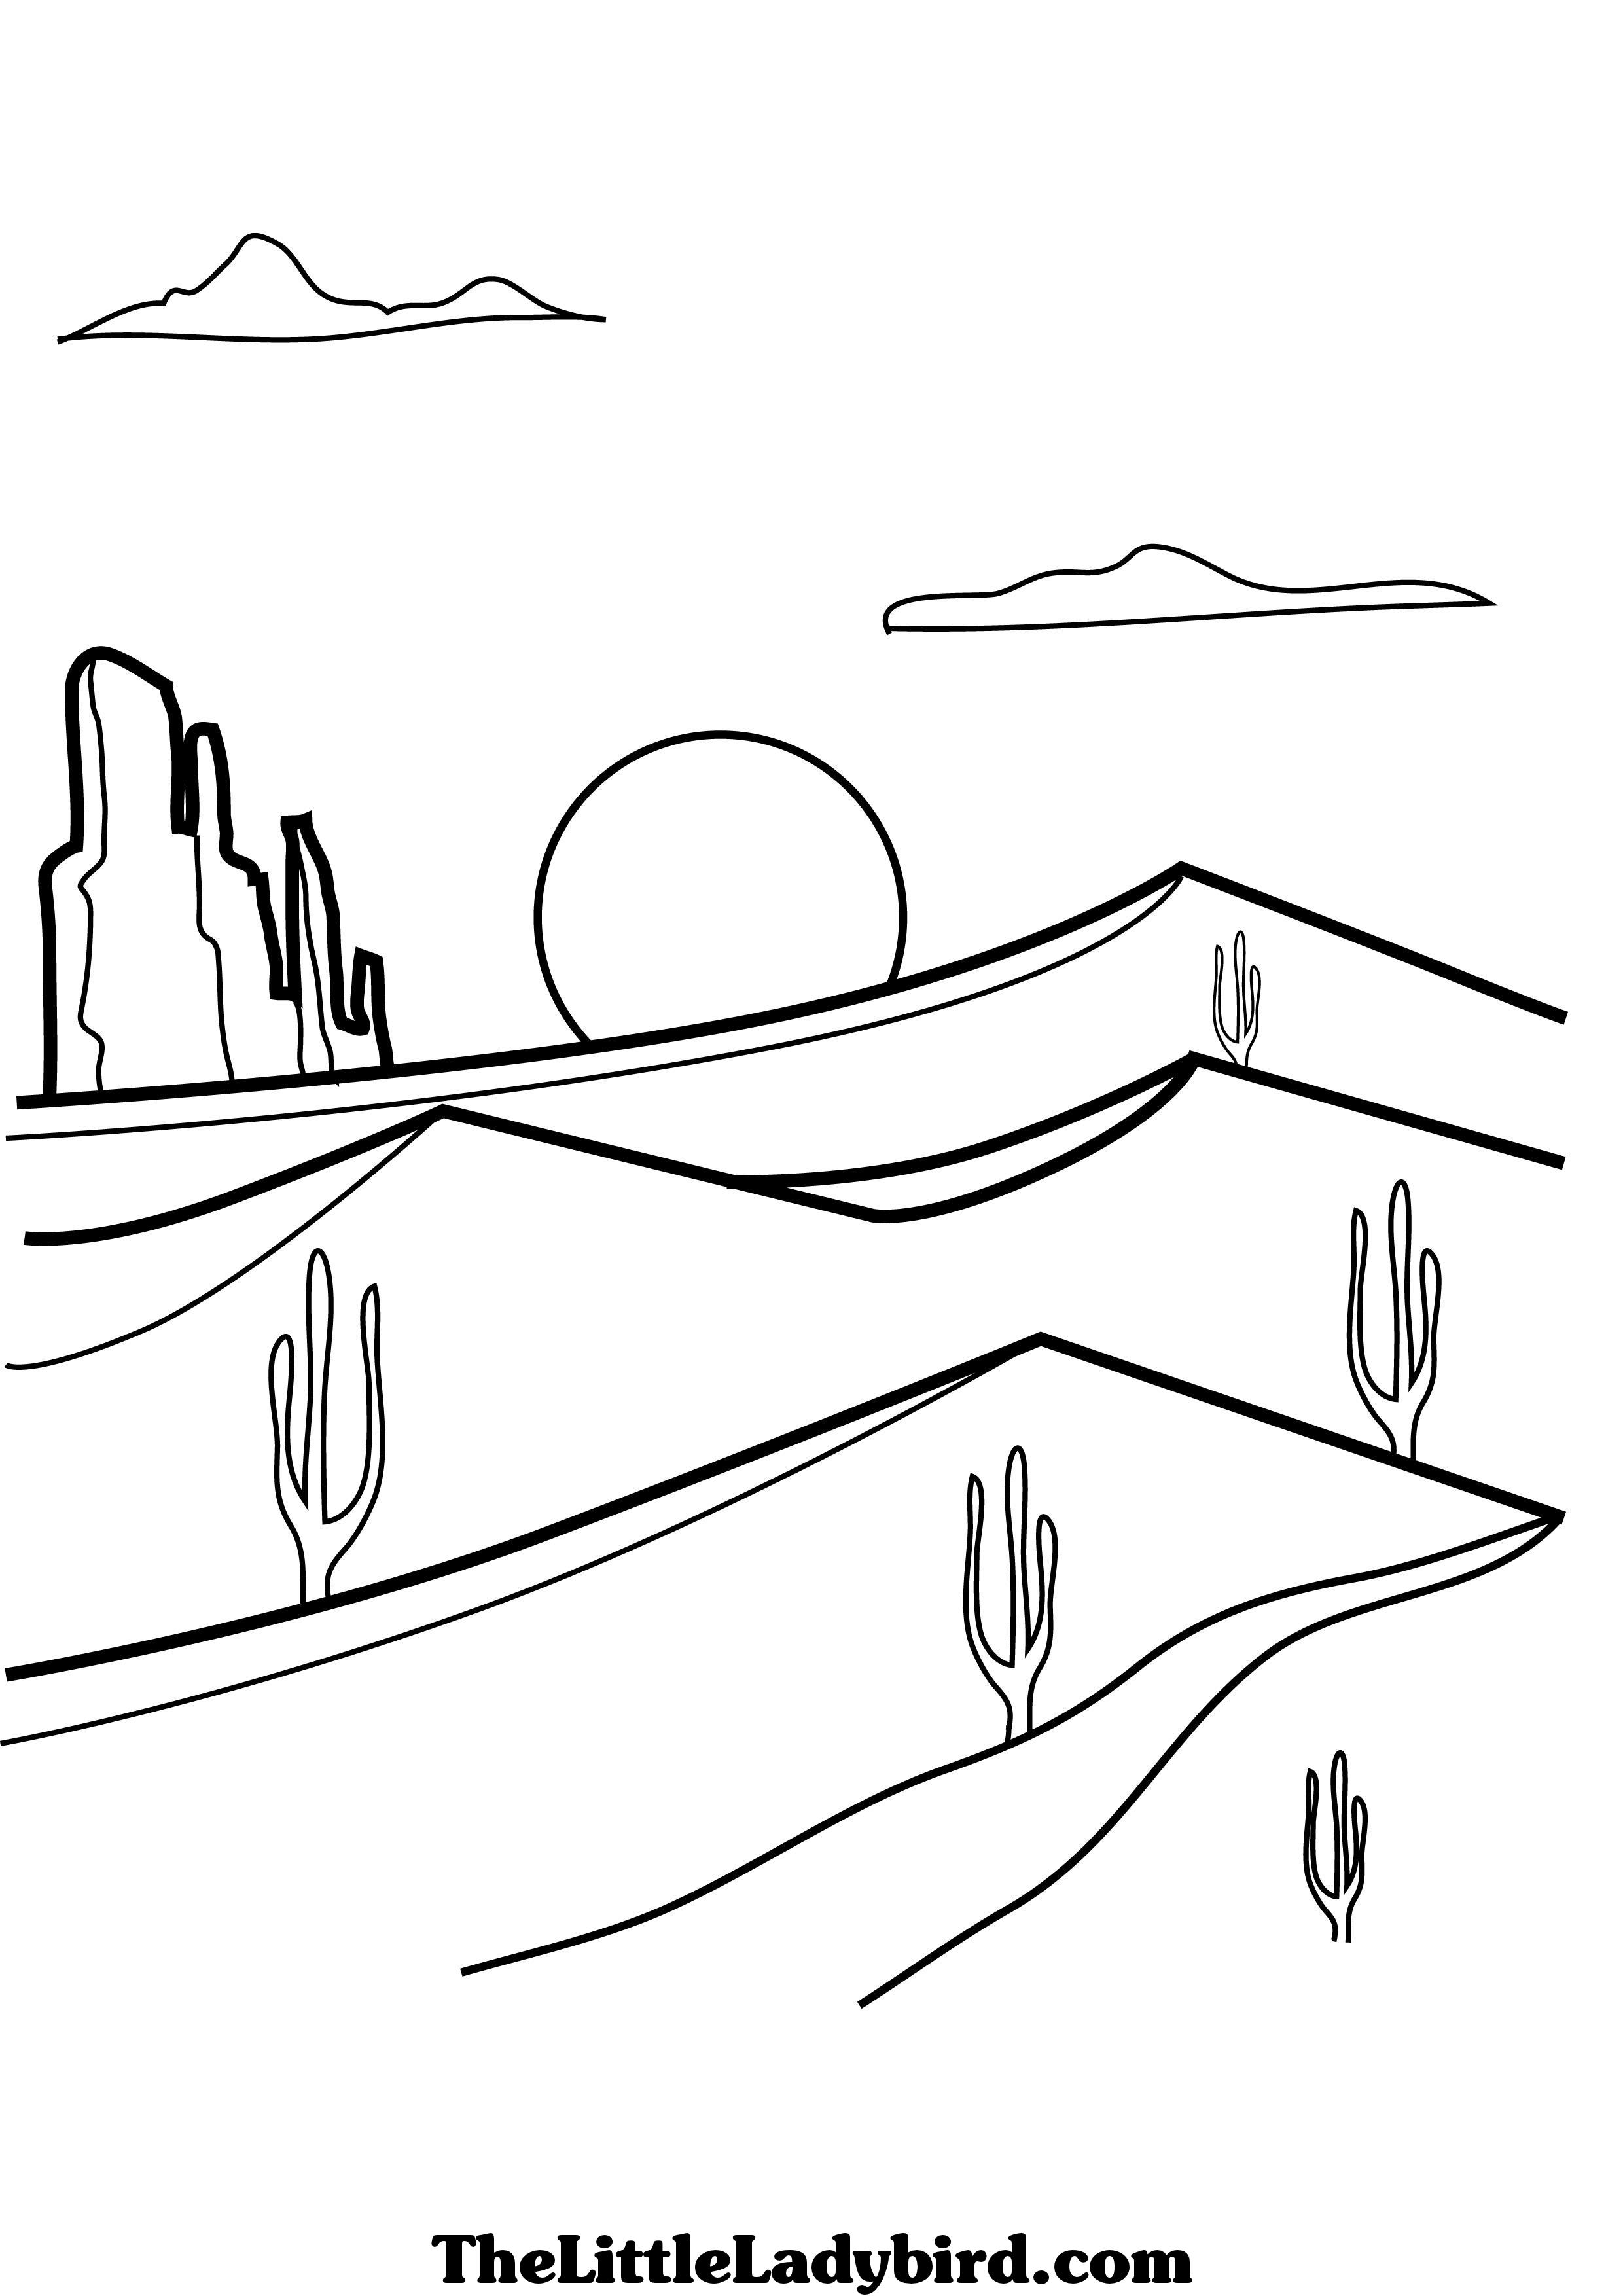 Desert Free Online Coloring Color On Pages Coloring Pages for Kids